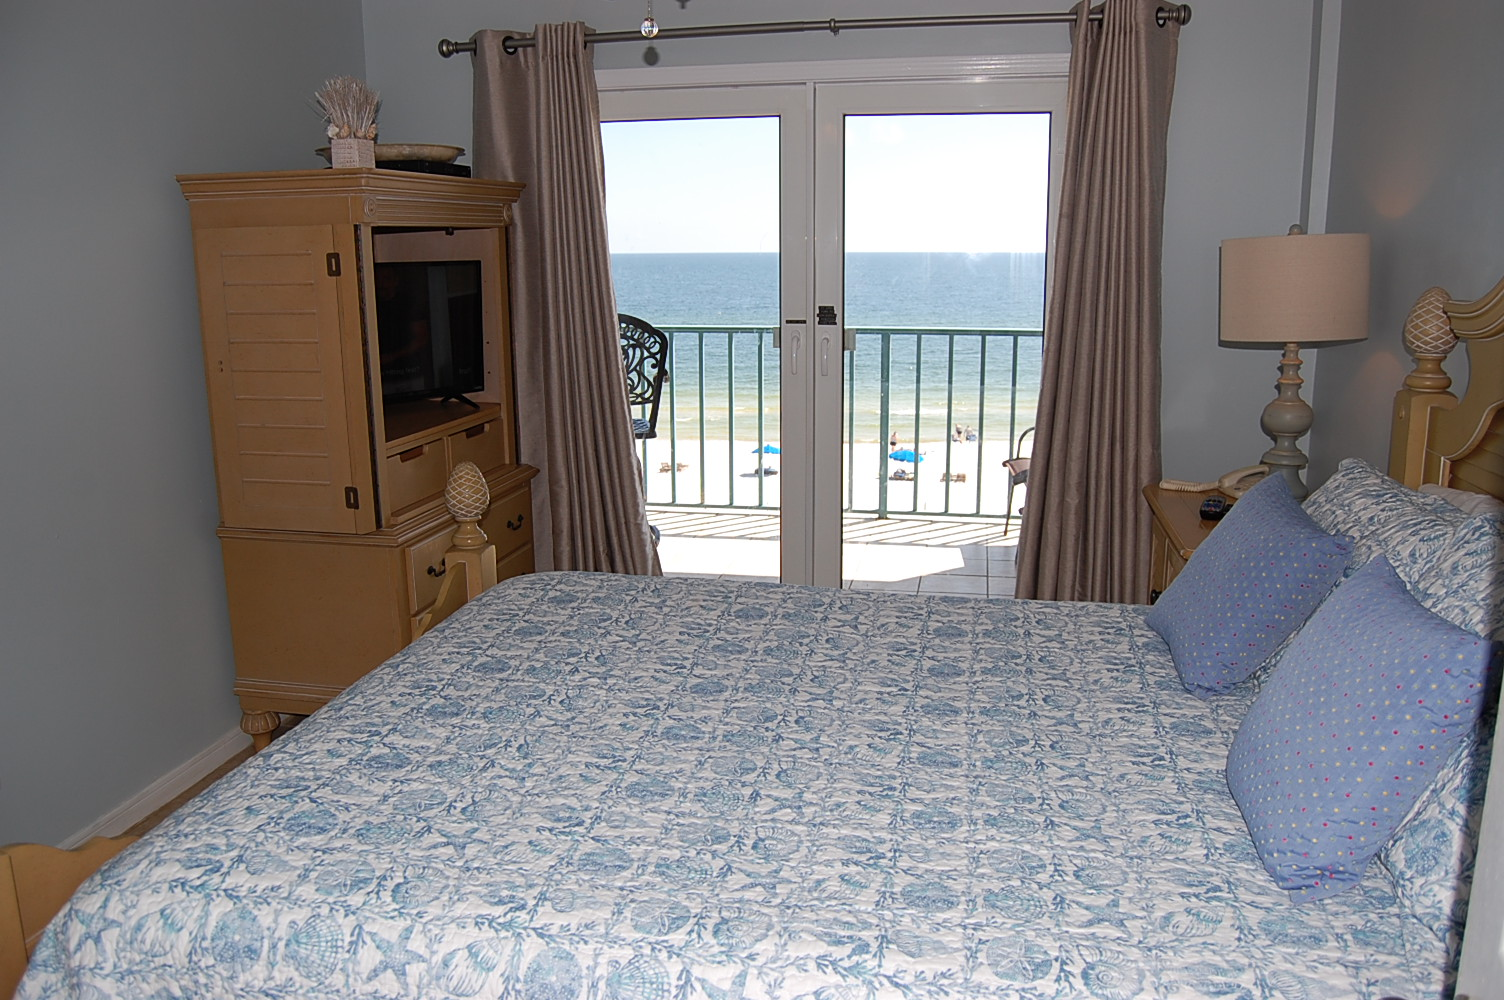 Surfside Shores 2502 Condo rental in Surfside Shores - Gulf Shores in Gulf Shores Alabama - #16